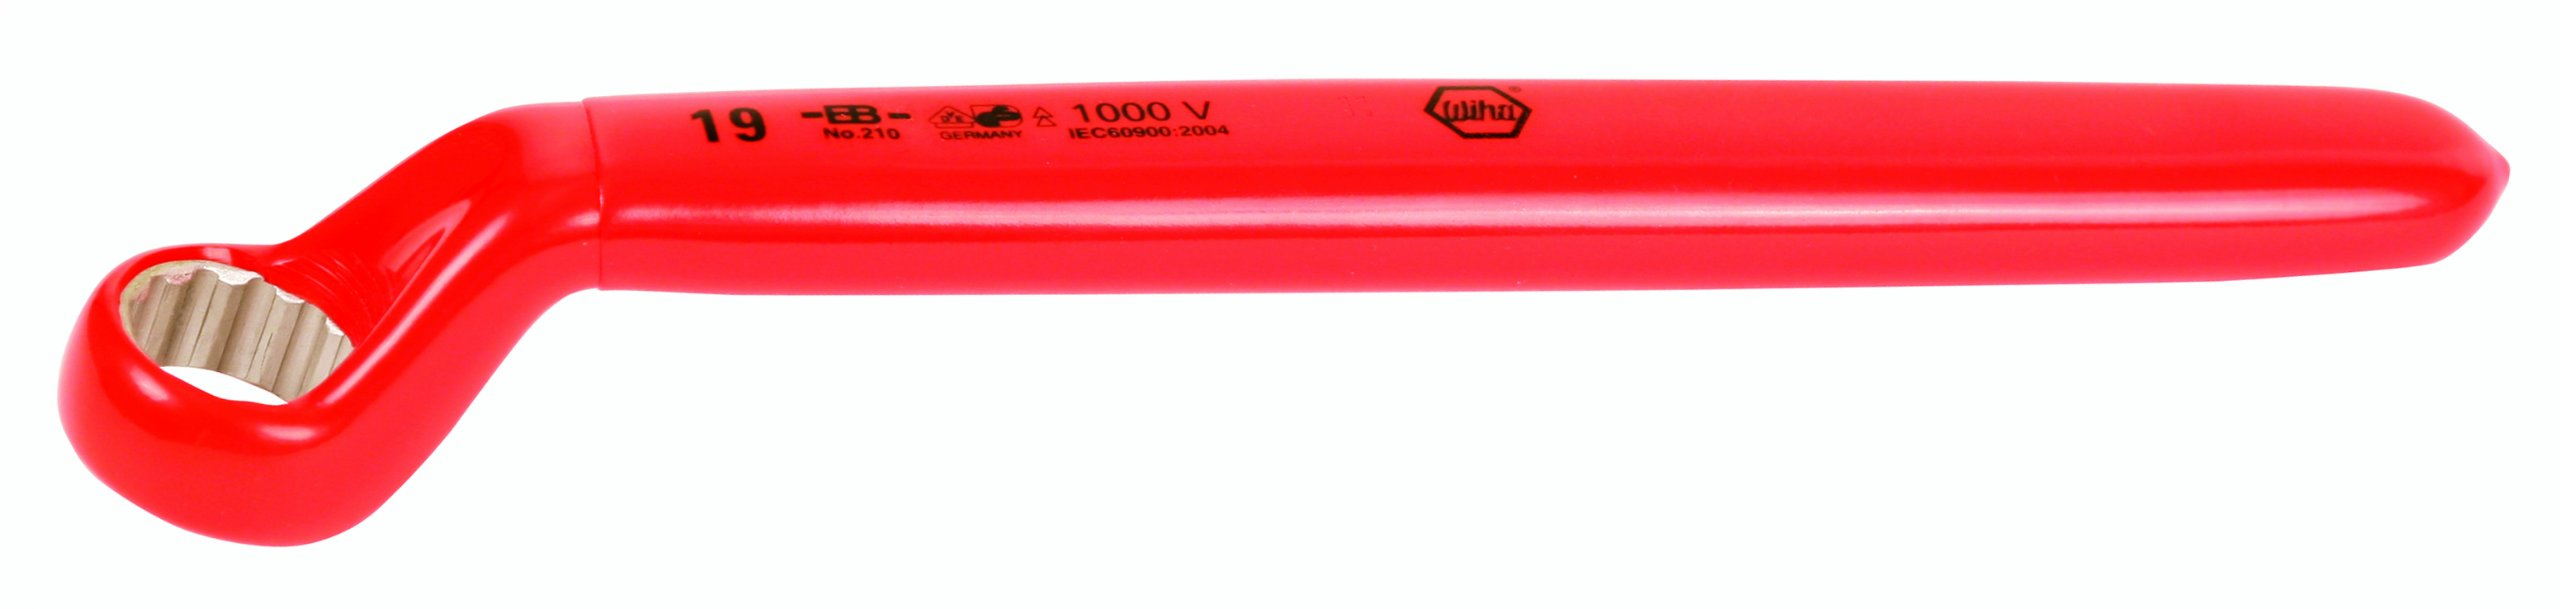 Wiha 21050 9/16-Inch Insulated Inch Deep Offset Wrench by Wiha